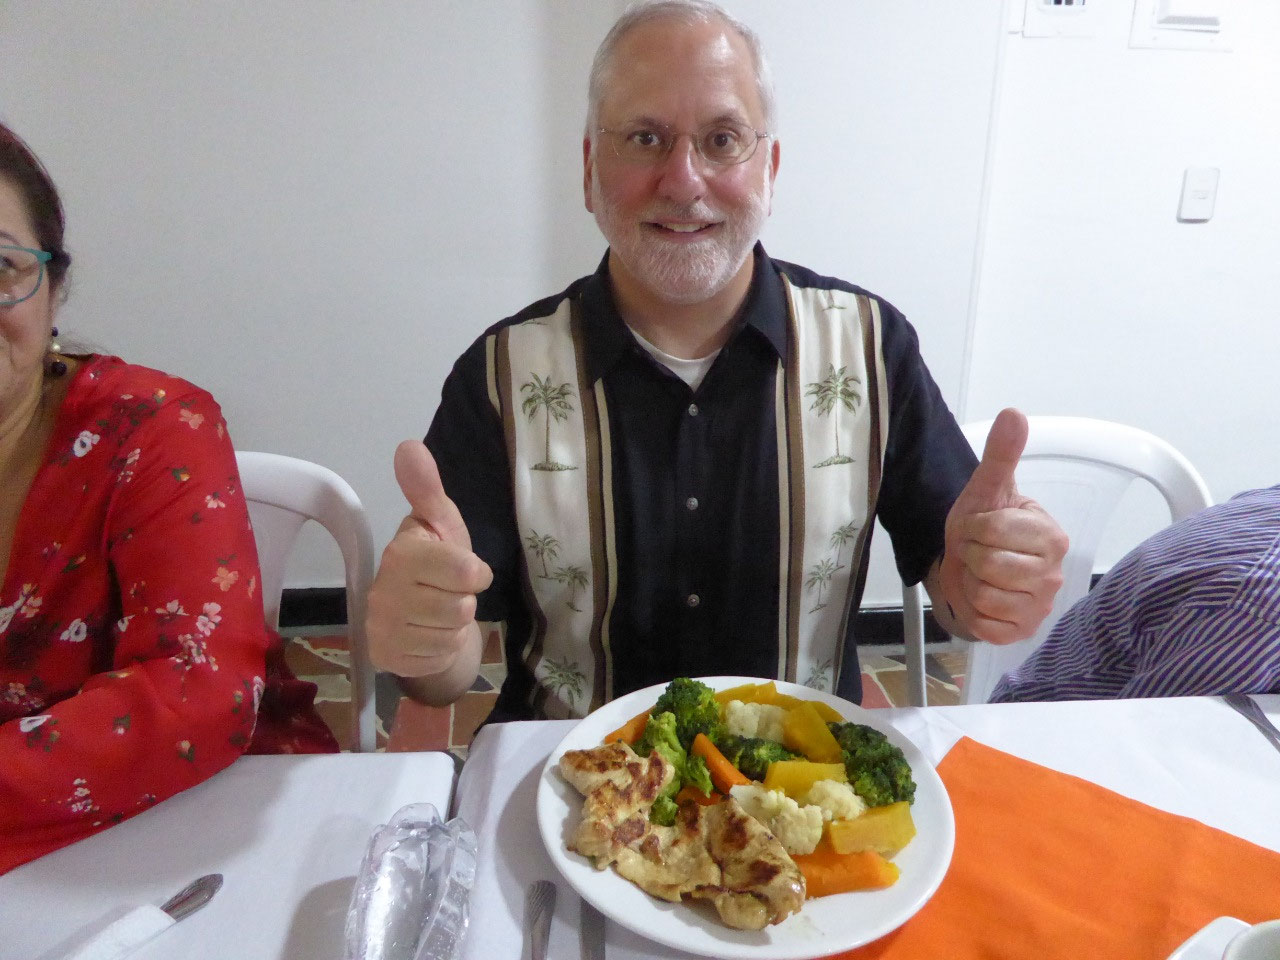 Scott is happy with his lunch